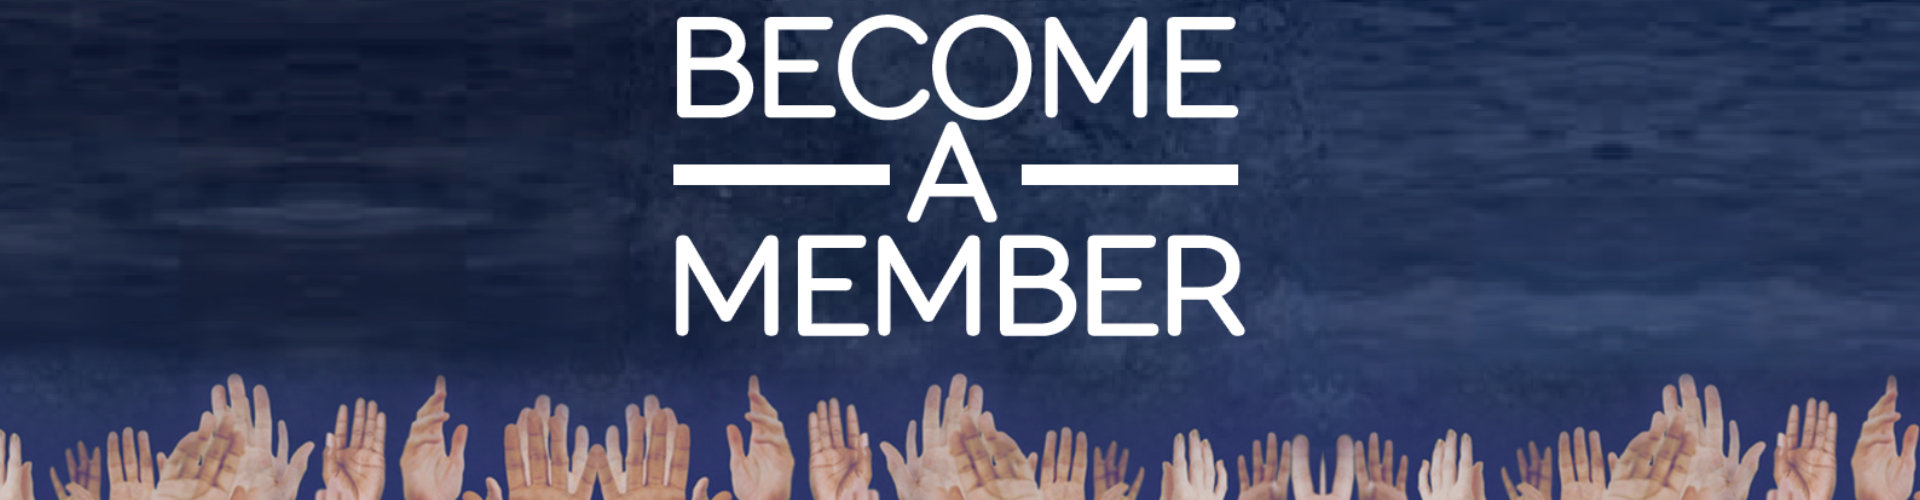 become a member image